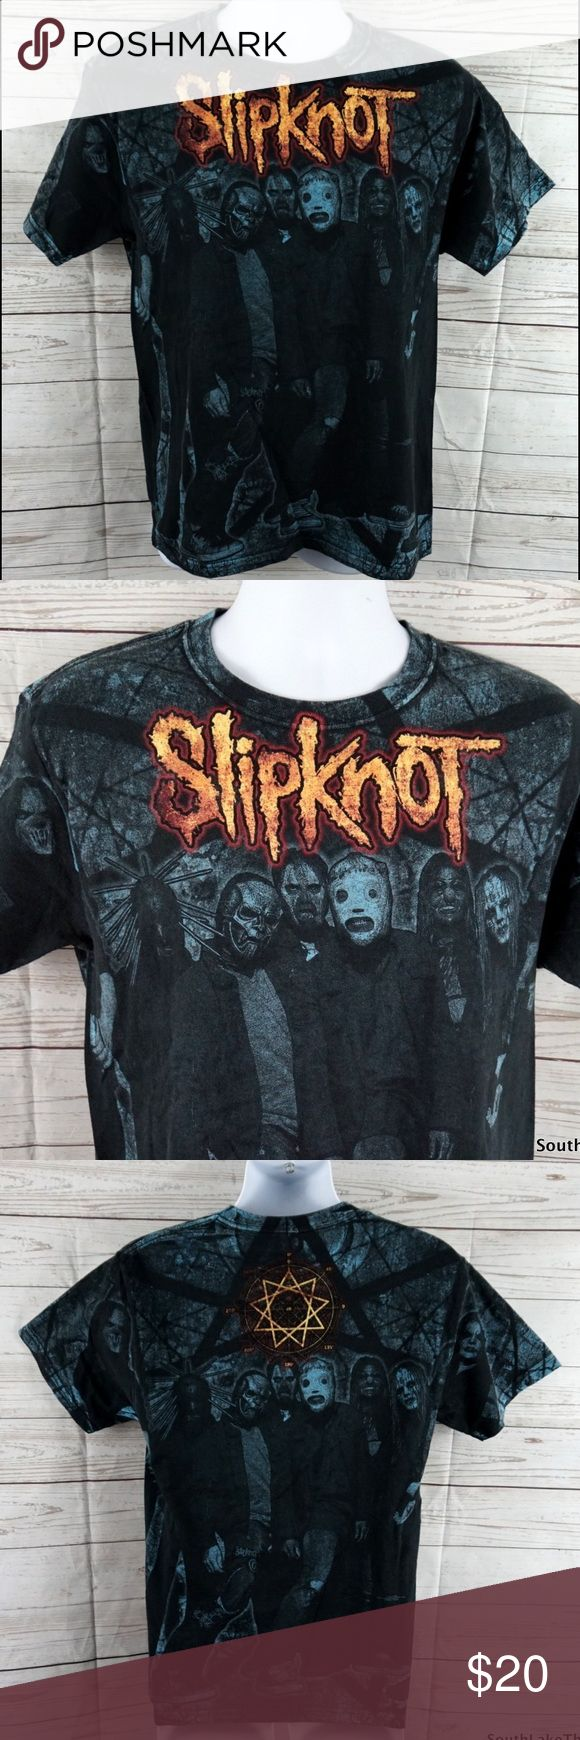 Joey jordison style favor photos pictures and wallpapers for - Slipknot Tour T Shirt Metal Grunge Concert Shirt